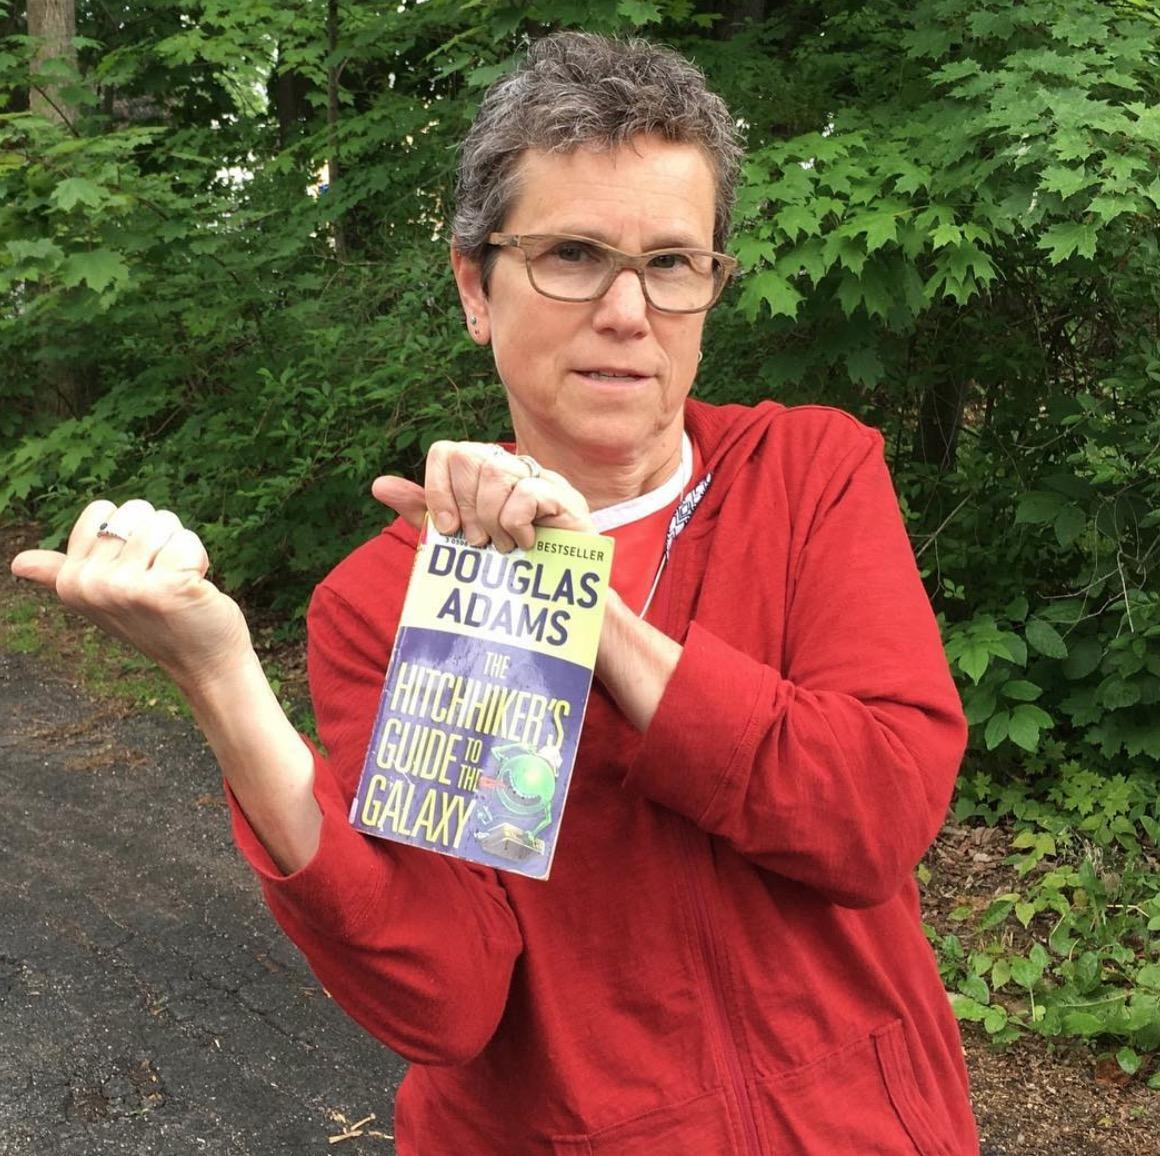 Julia Chevan jokingly hitchhikes while holding a copy of Hitchhikers Guide to the Galaxy